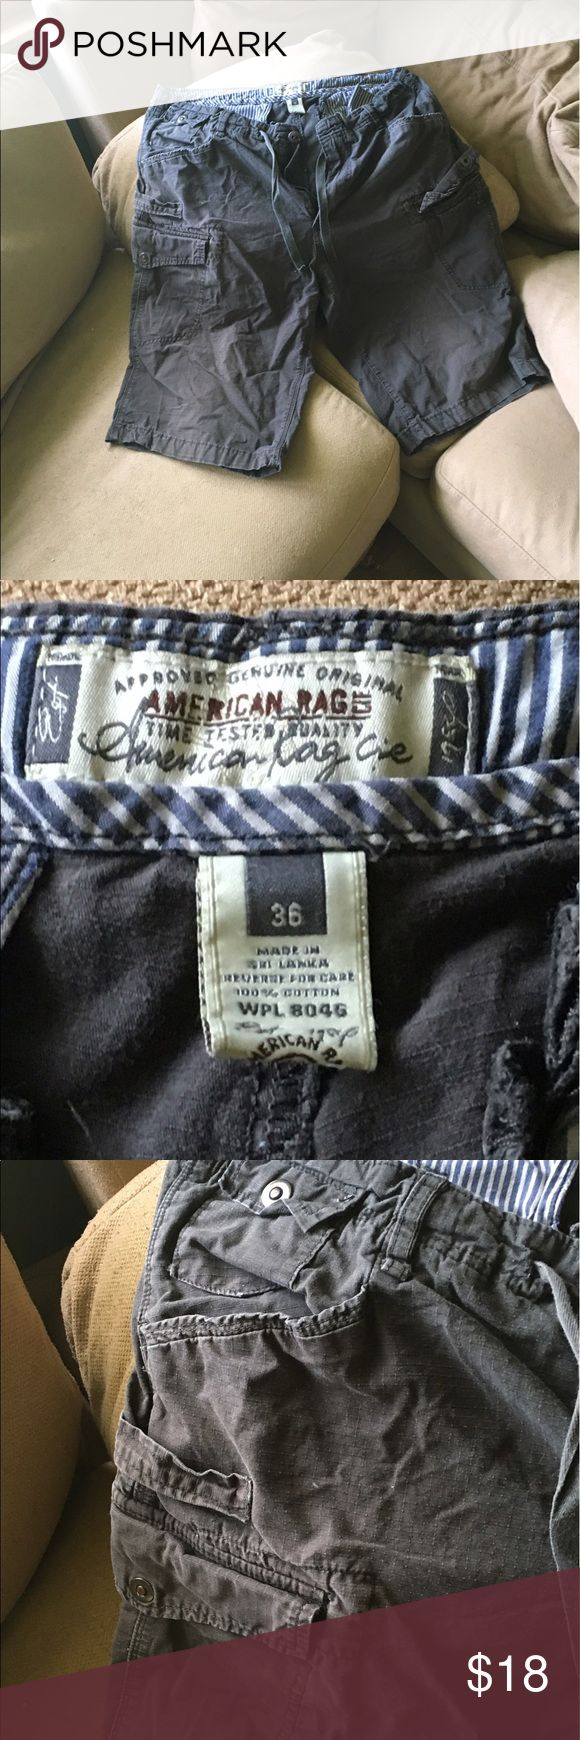 Classic American Rag Men's Cargo Shorts Great cargos. Just perfect. They're that olive green/black/gray color that men like. Who knows what color they are . . . They're too small for my son/s now. Worn maybe twice. Perfect condition. All the bells and whistles. American Rag Shorts Cargo